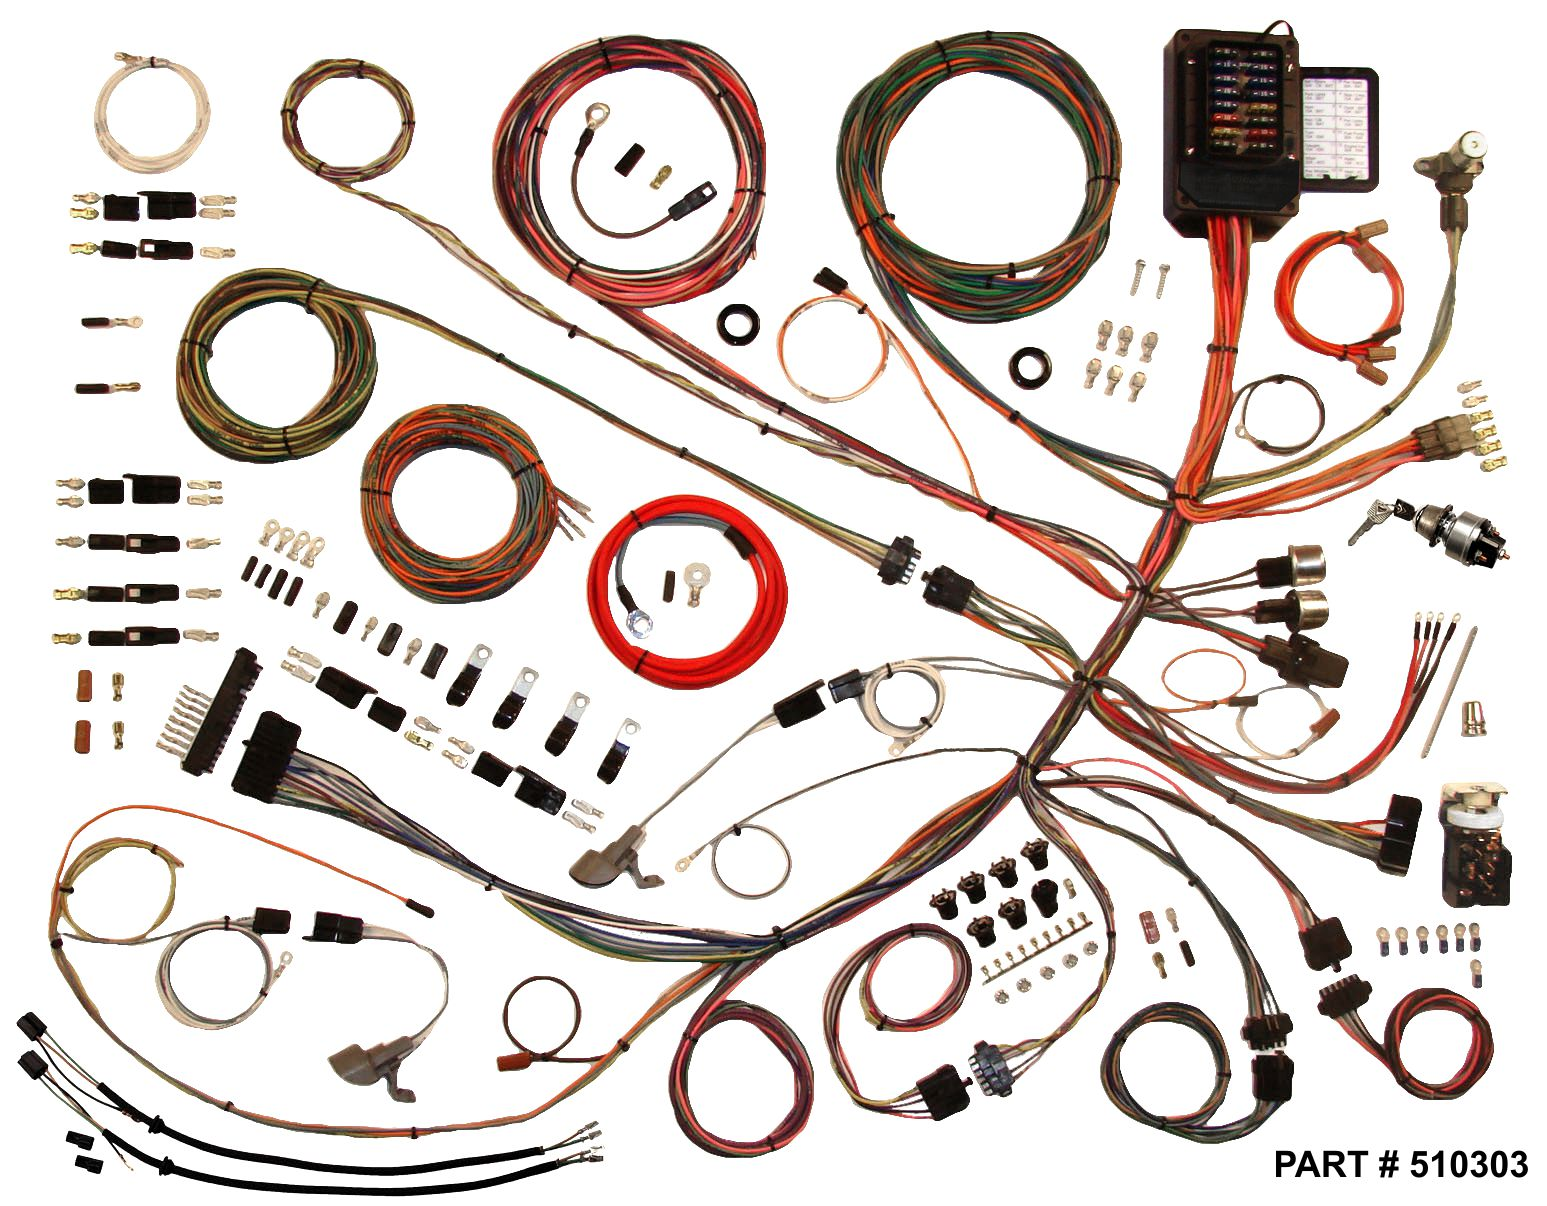 81 f100 custom wiring harness 81 chevy truck wiring harness